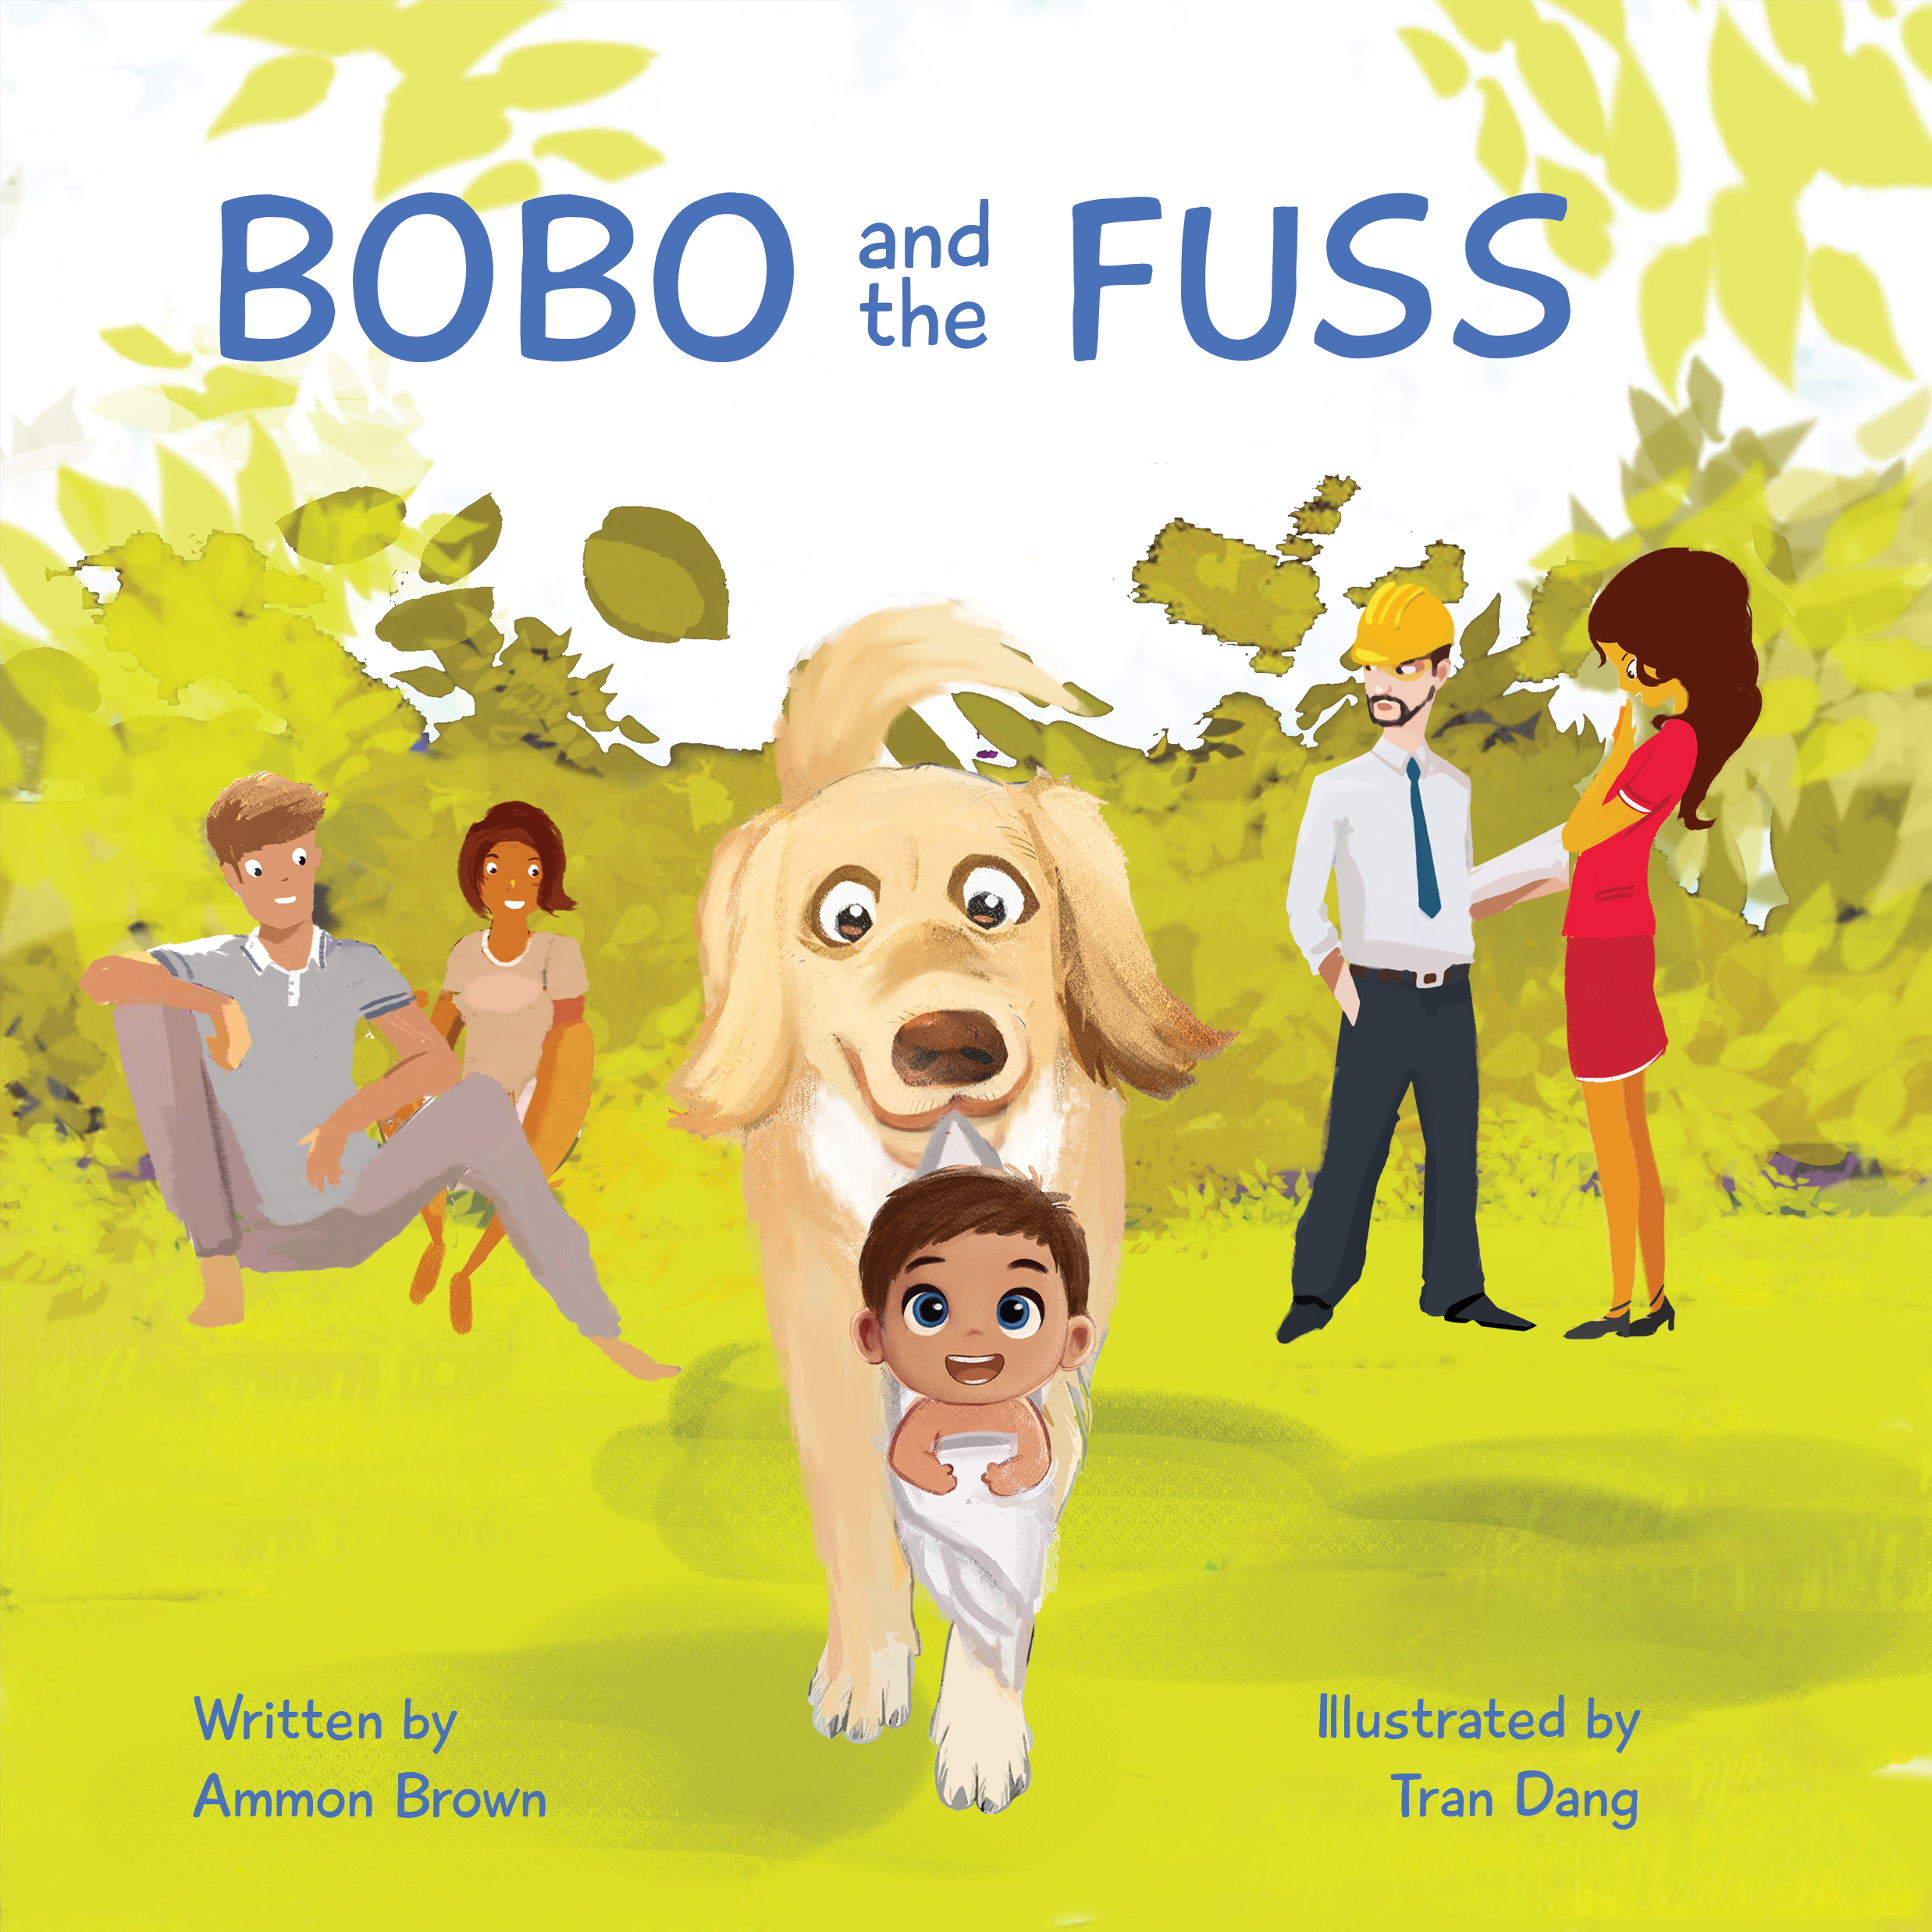 BOBO AND THE FUSS